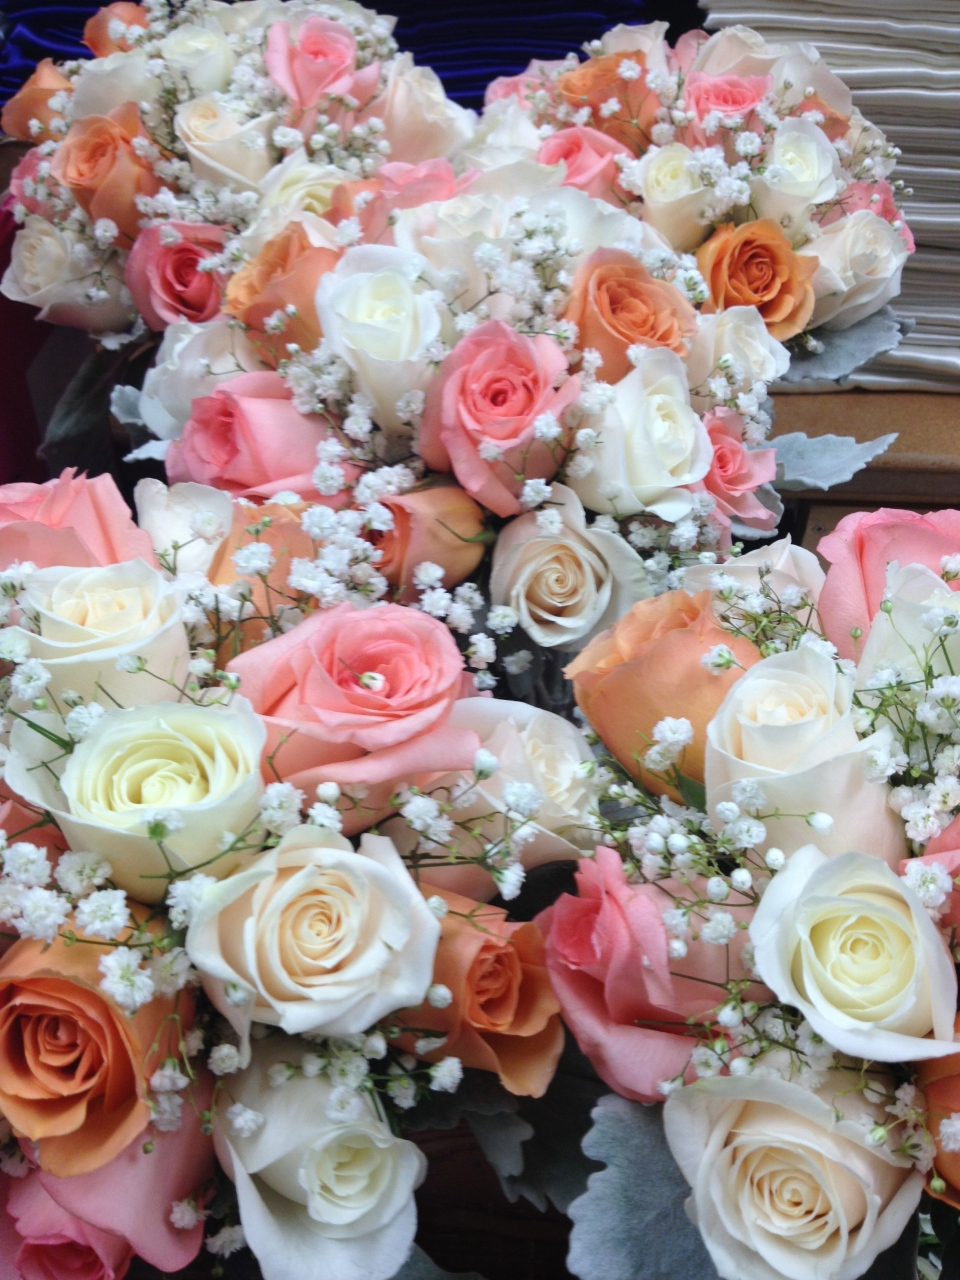 Peach, pink and white rose bouquet with baby's breath